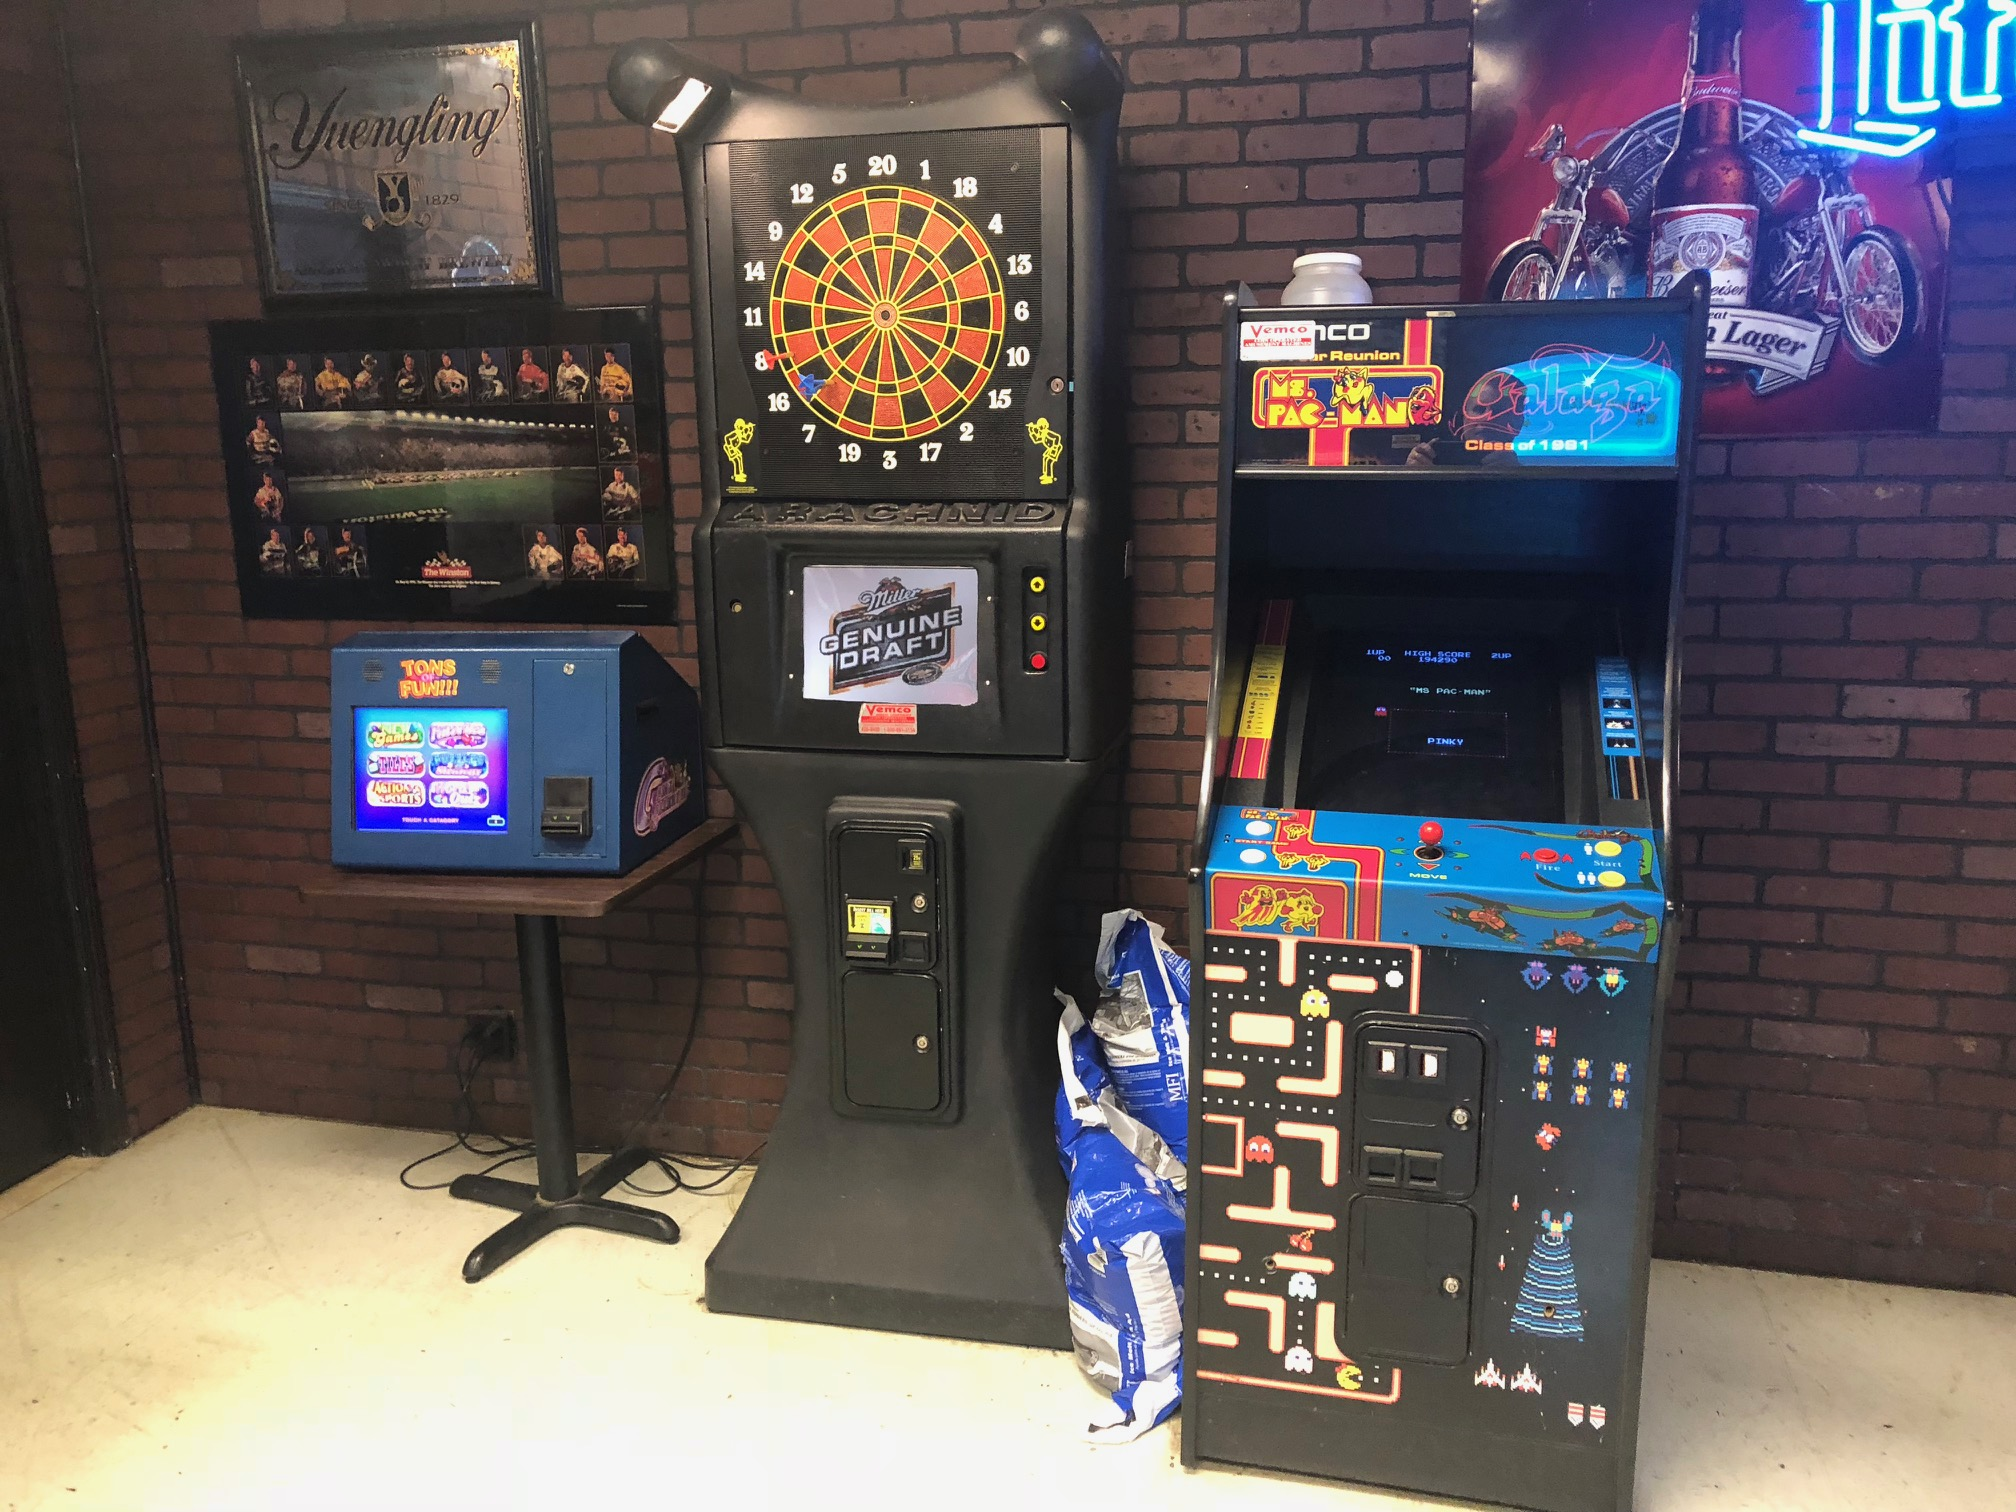 Darts, video games, and more at Dave's Place